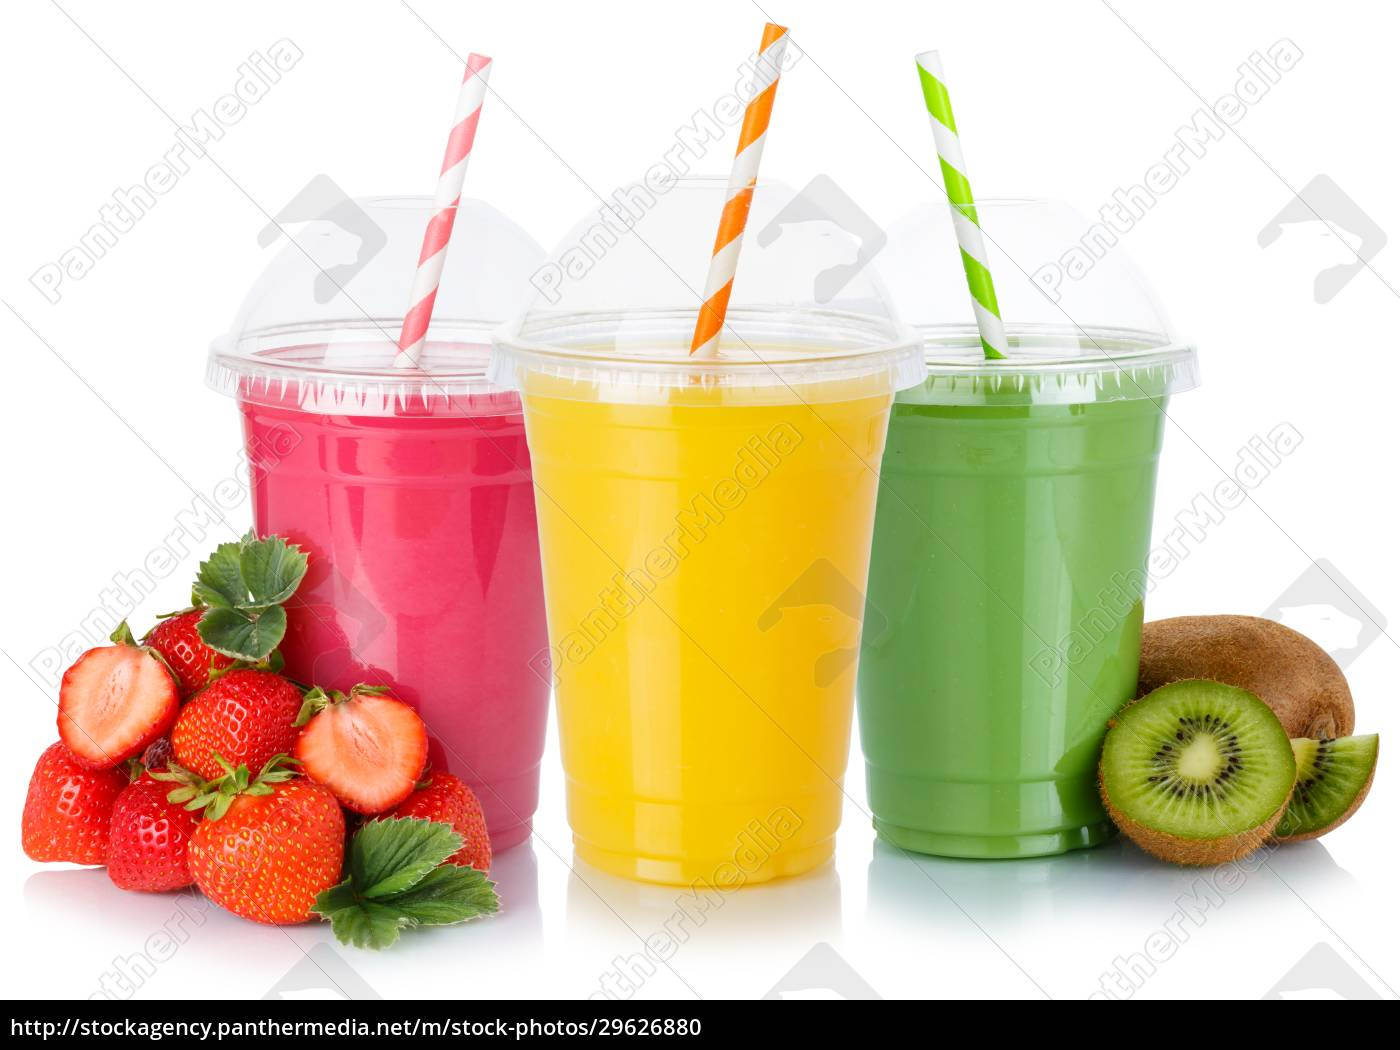 fruit, juice, smoothies, drink, drinks, cups - 29626880